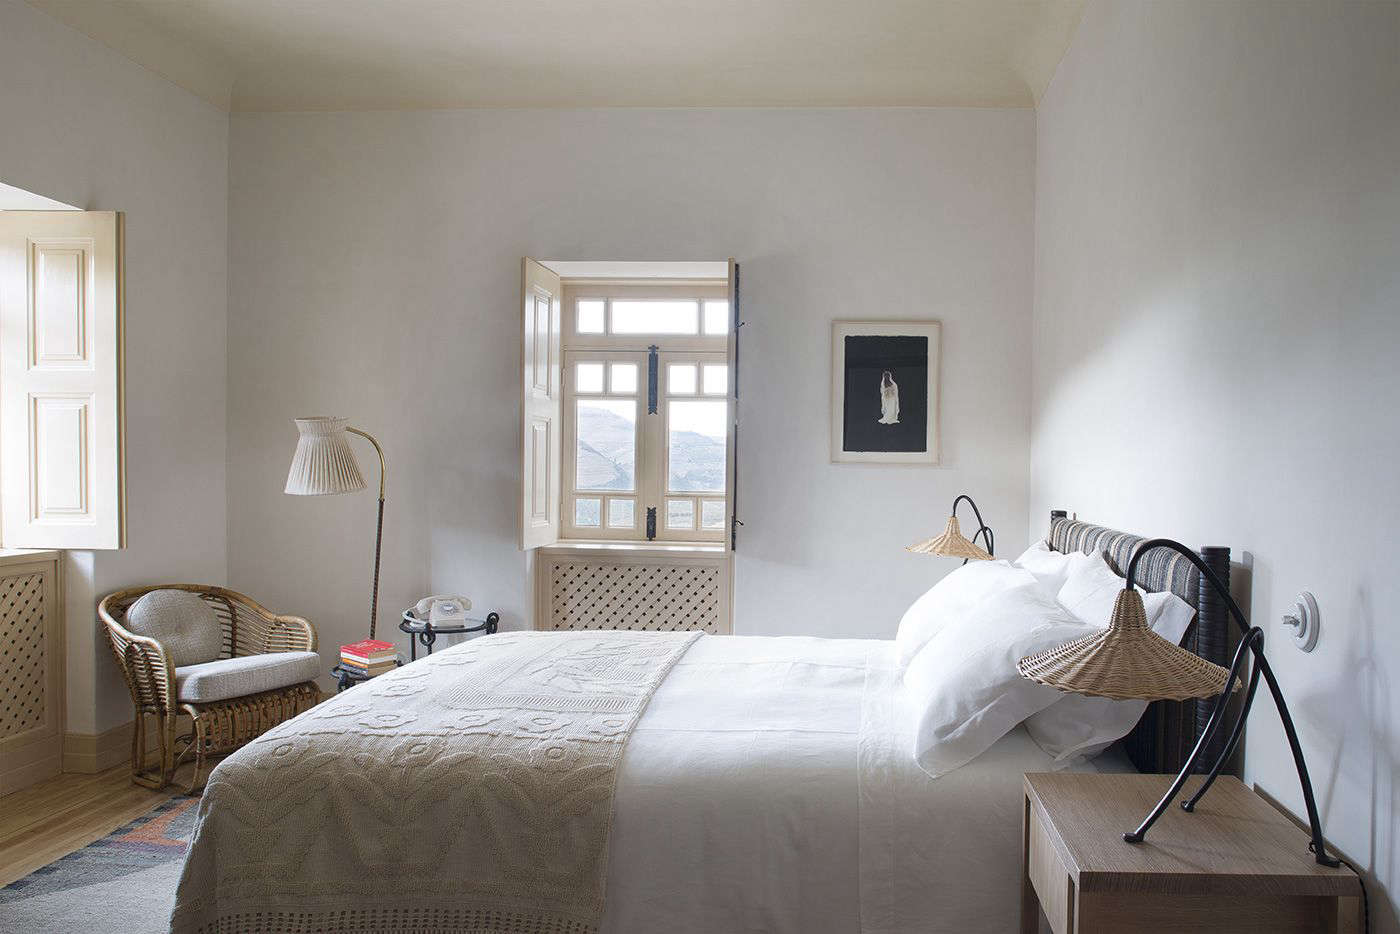 Each bedroom is fitted with rattan lamps, mix-and-match patterned blankets, and a rotary phone, an indication of the property's low-fi, off-the-grid ethos.